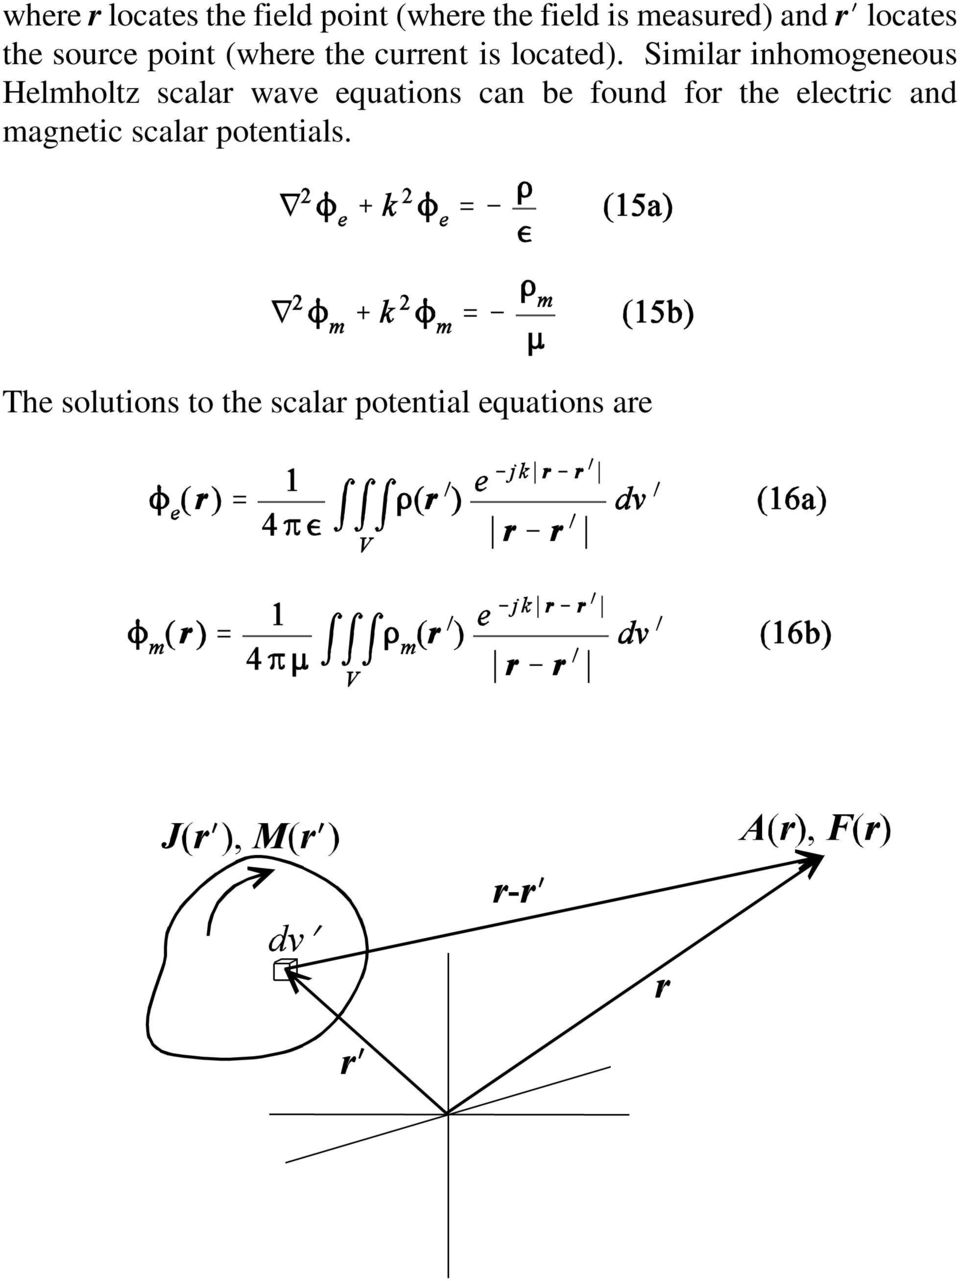 Similar inhomogeneous Helmholtz scalar wave equations can be found for